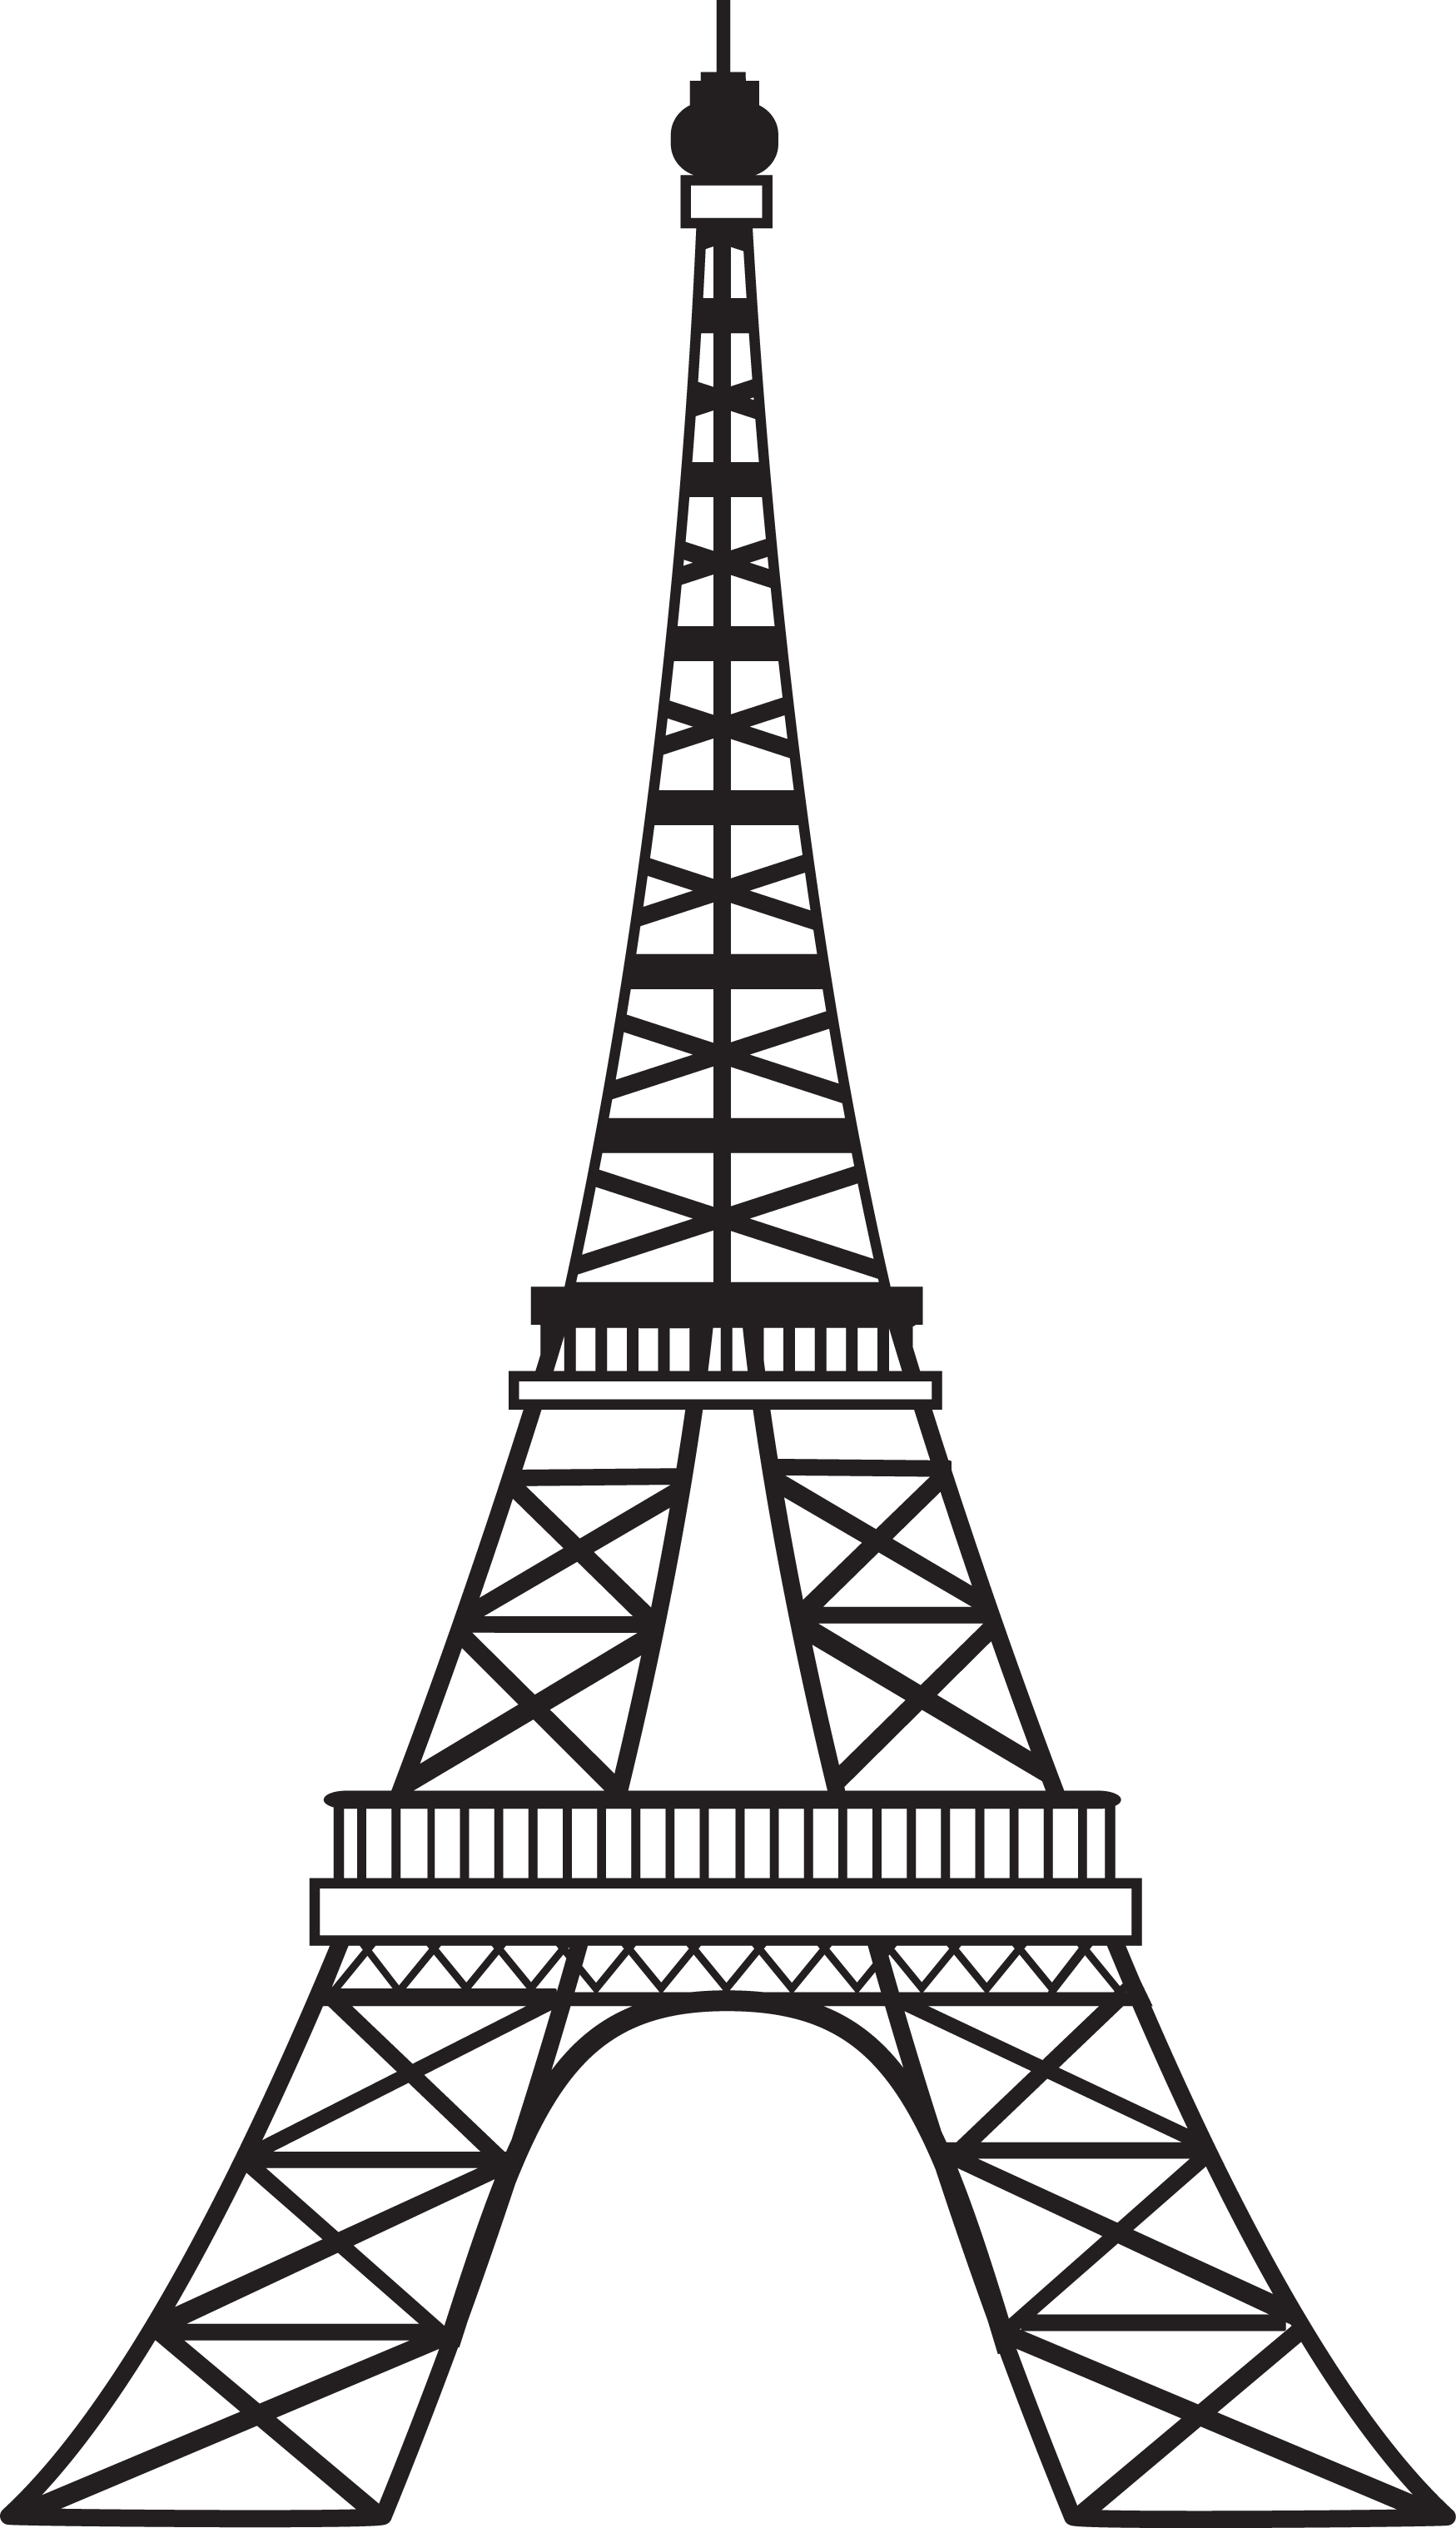 Torre eiffel dibujo clipart svg free stock Torre Eiffel Drawing at PaintingValley.com | Explore ... svg free stock